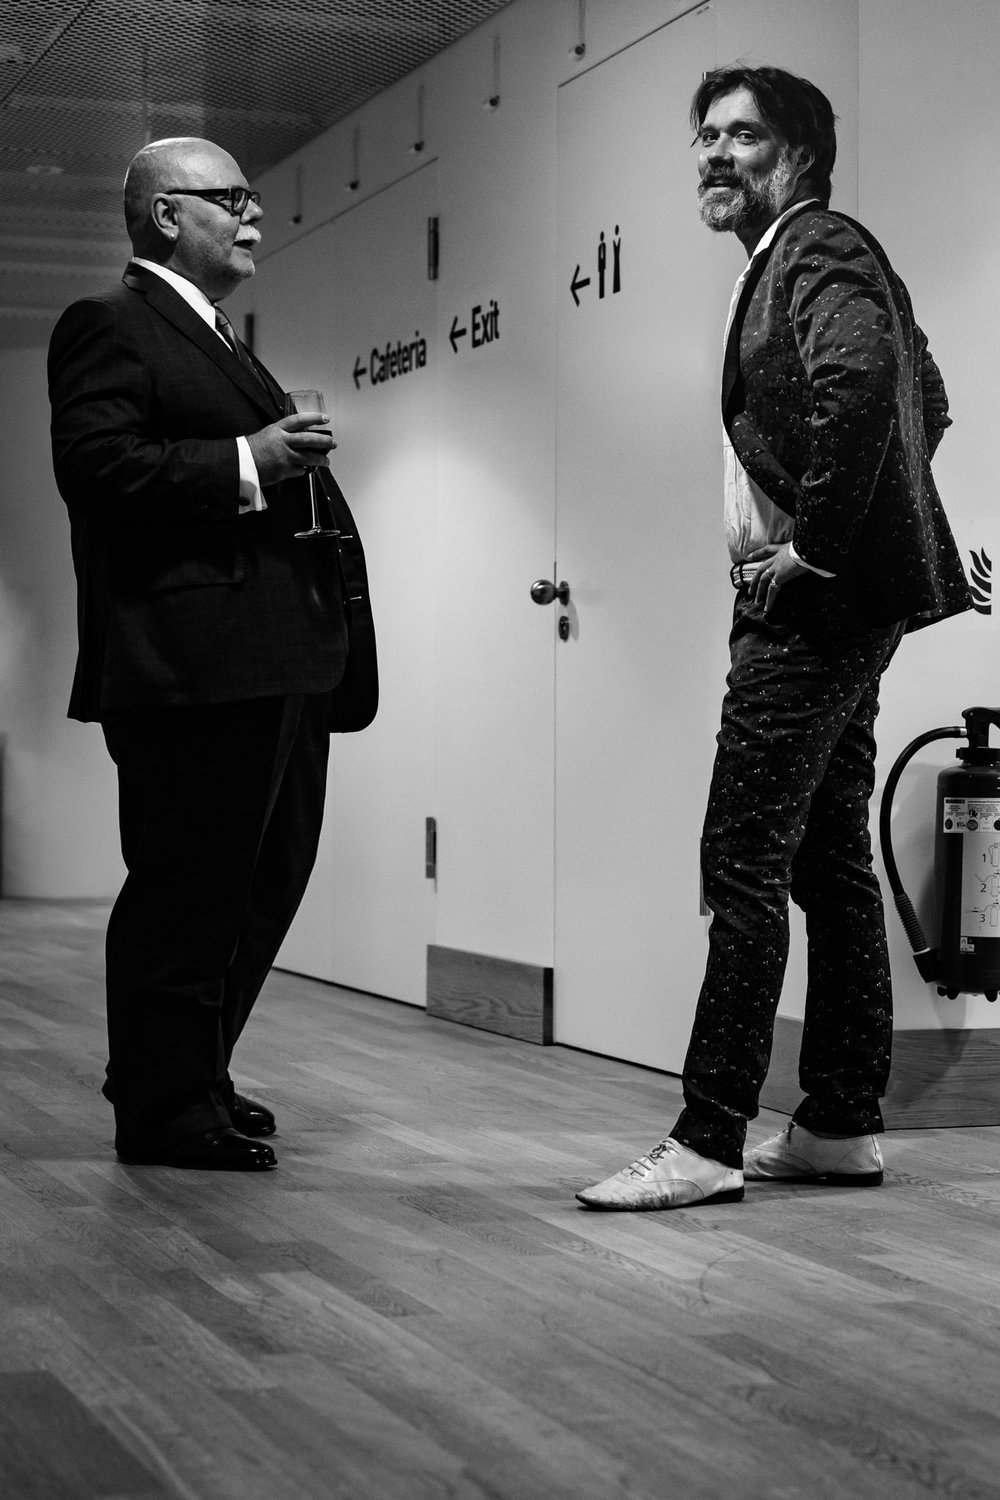 Mark Hummel and Rufus Wainwright post Hamburg concert at the Elbphilharmonie. Photo Credit: Peter Hundert